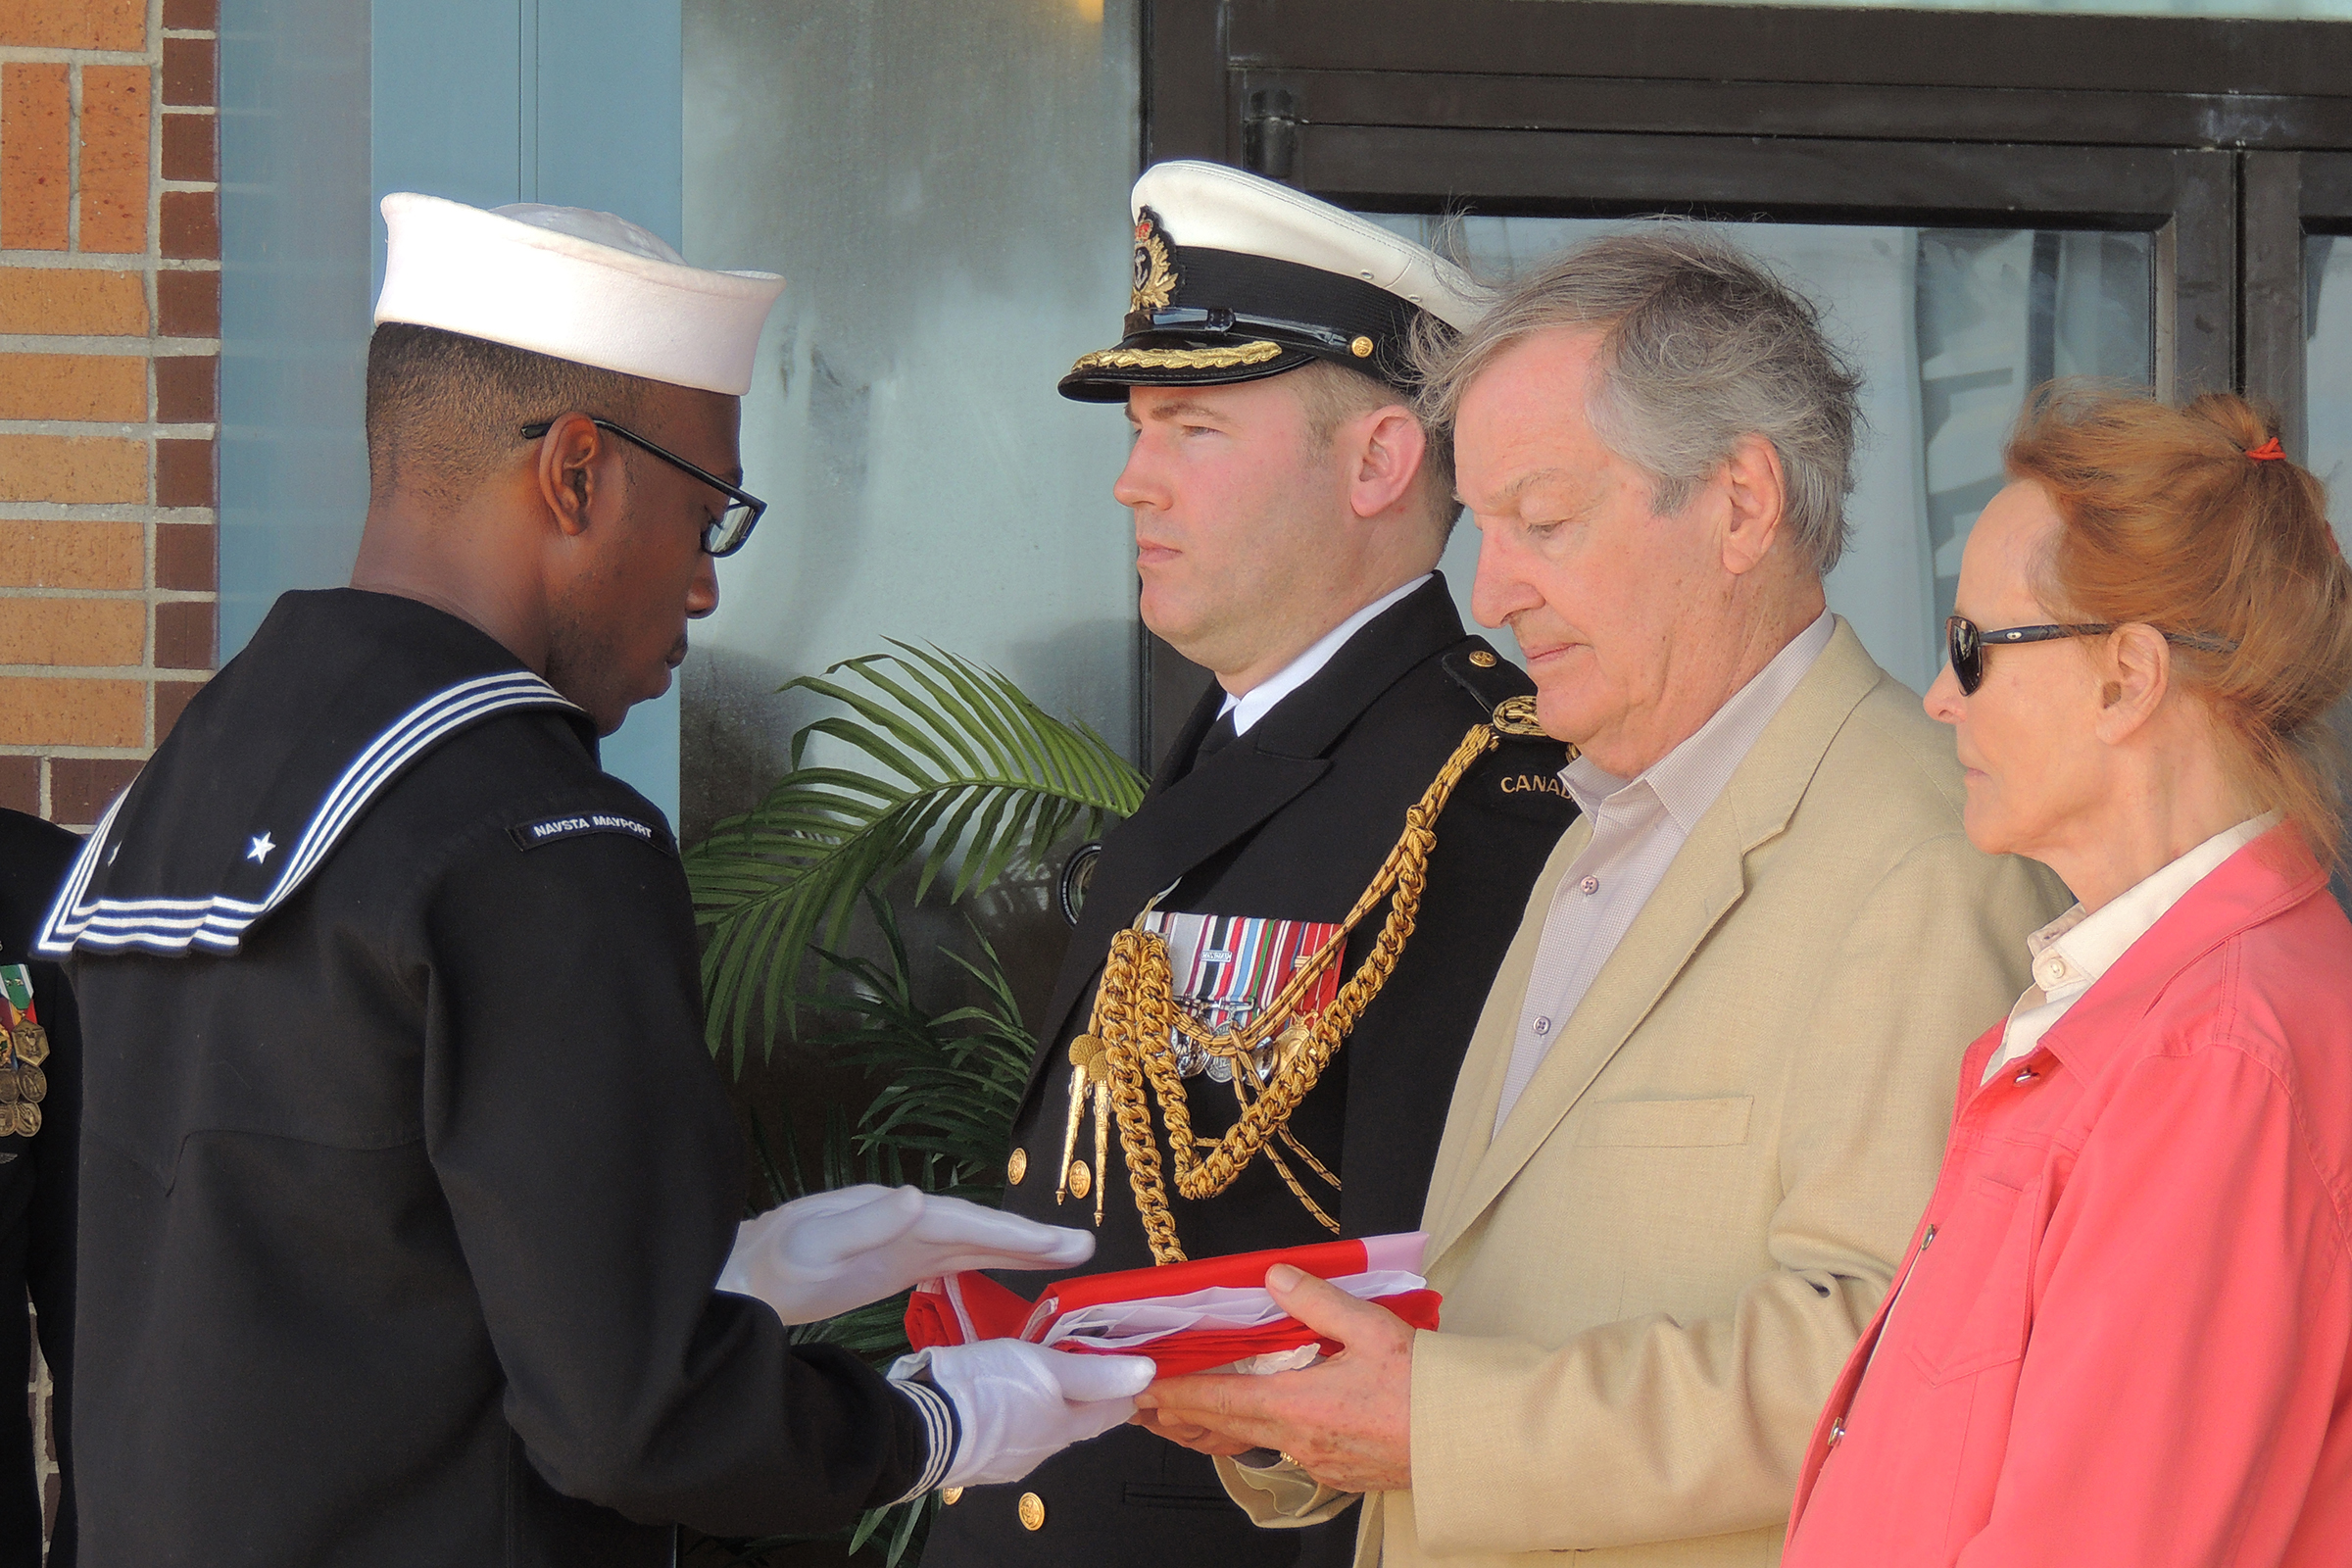 A United States Navy sailor presents Mr. Troy with a Canadian flag that flew at the Embassy of Canada on February 25, 2018, 60 years to the day since fighter pilot Lieutenant Barry Troy was lost off the coast of Florida near U.S. Naval Station Mayport. With Mr. Troy are Captain (Navy) Kristjan Monaghan, the Canadian naval attaché at the Embassy of Canada in Washington, and Mrs. Pauline Troy. PHOTO: Joanna Calder, RCAF Public Affairs